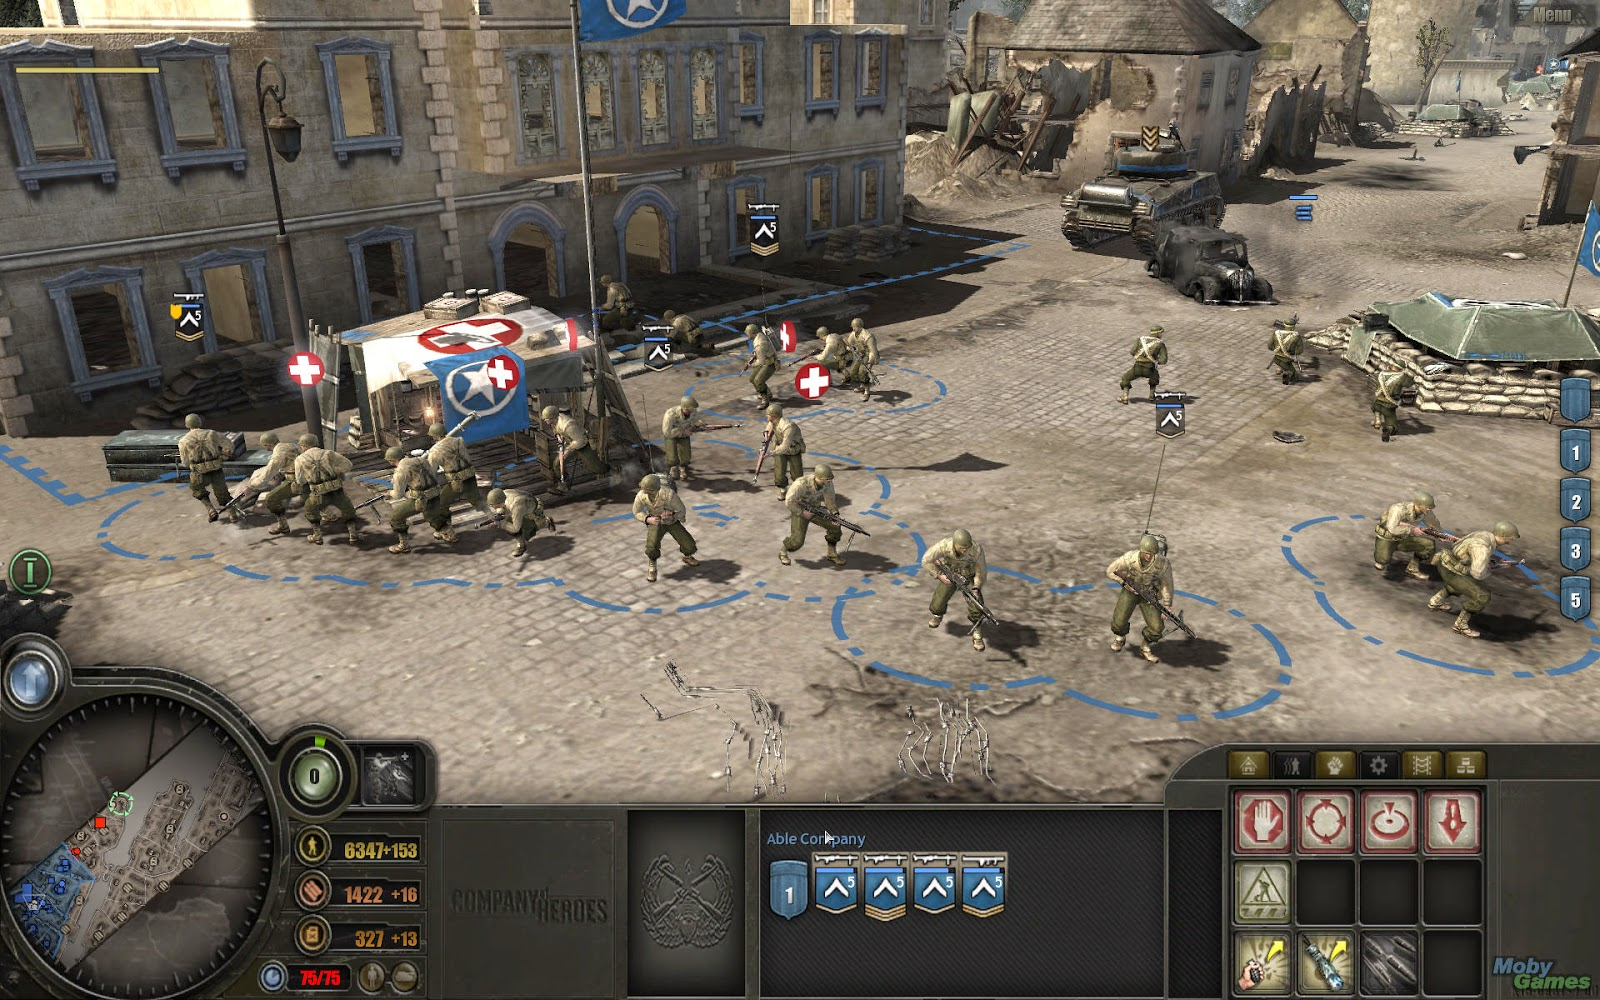 Company of heroes 2 Game For PC Free Download